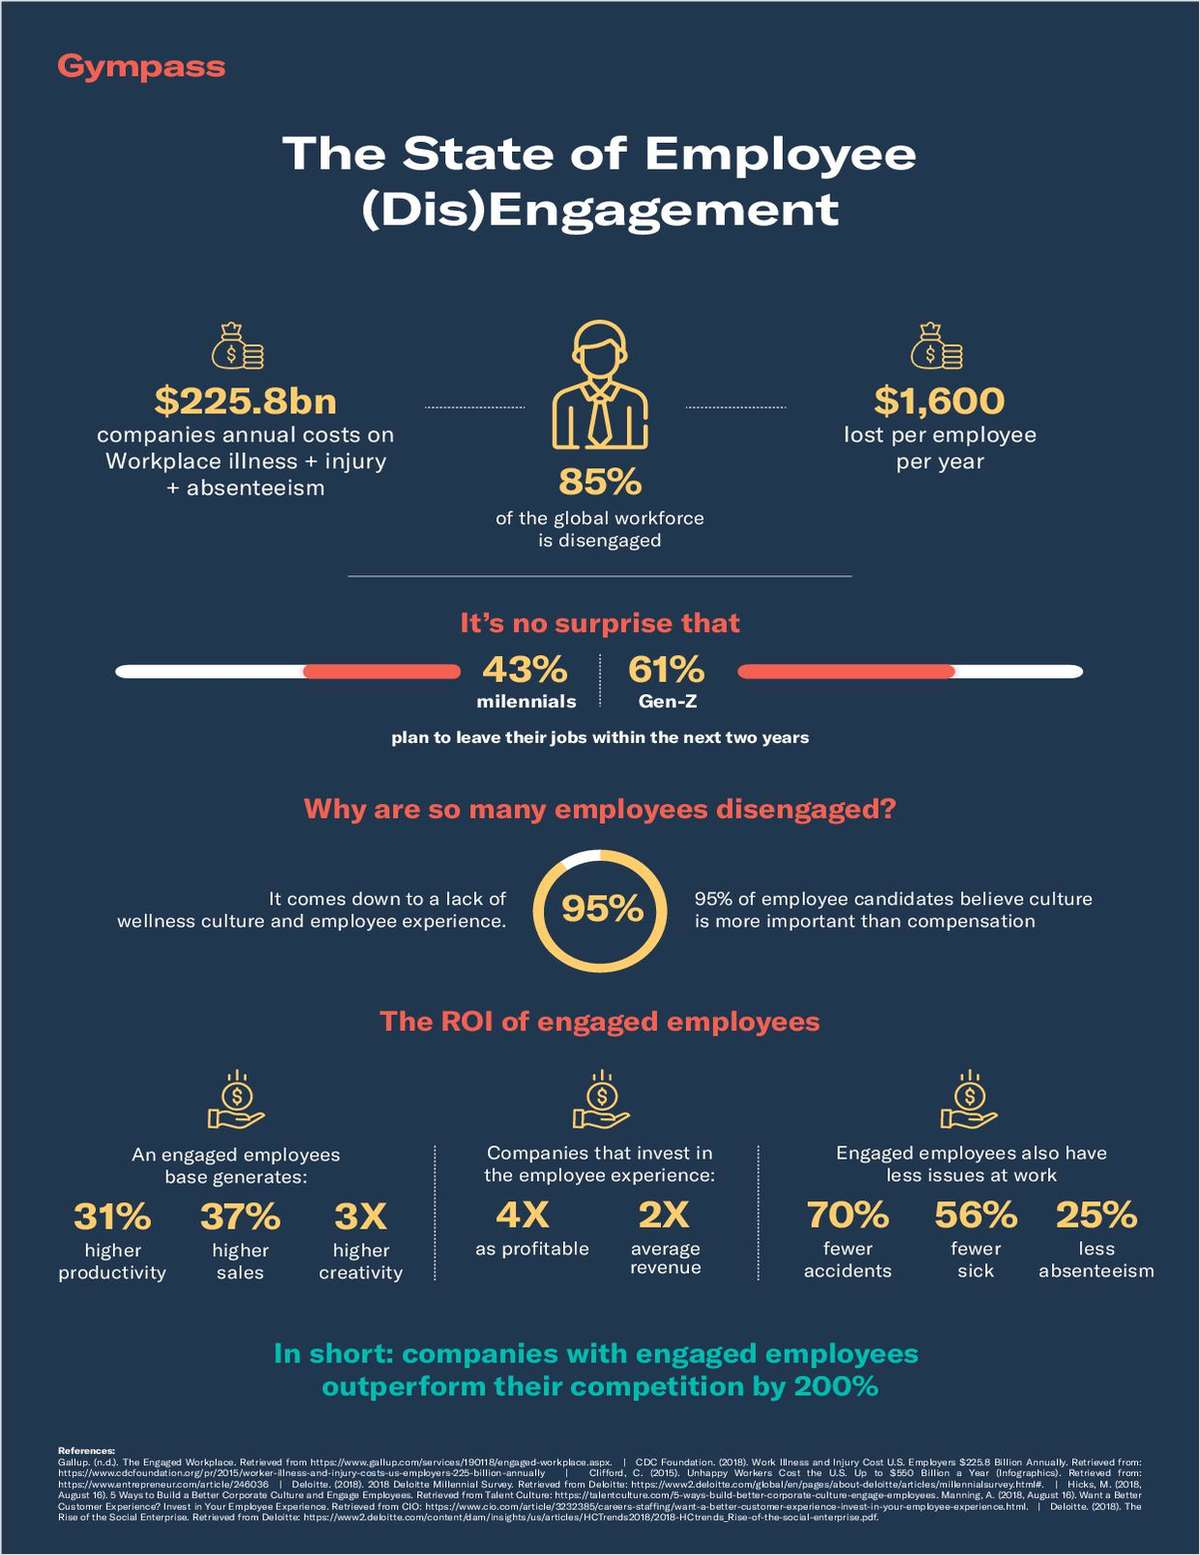 Infographic of The State of Employee (Dis)Engagement